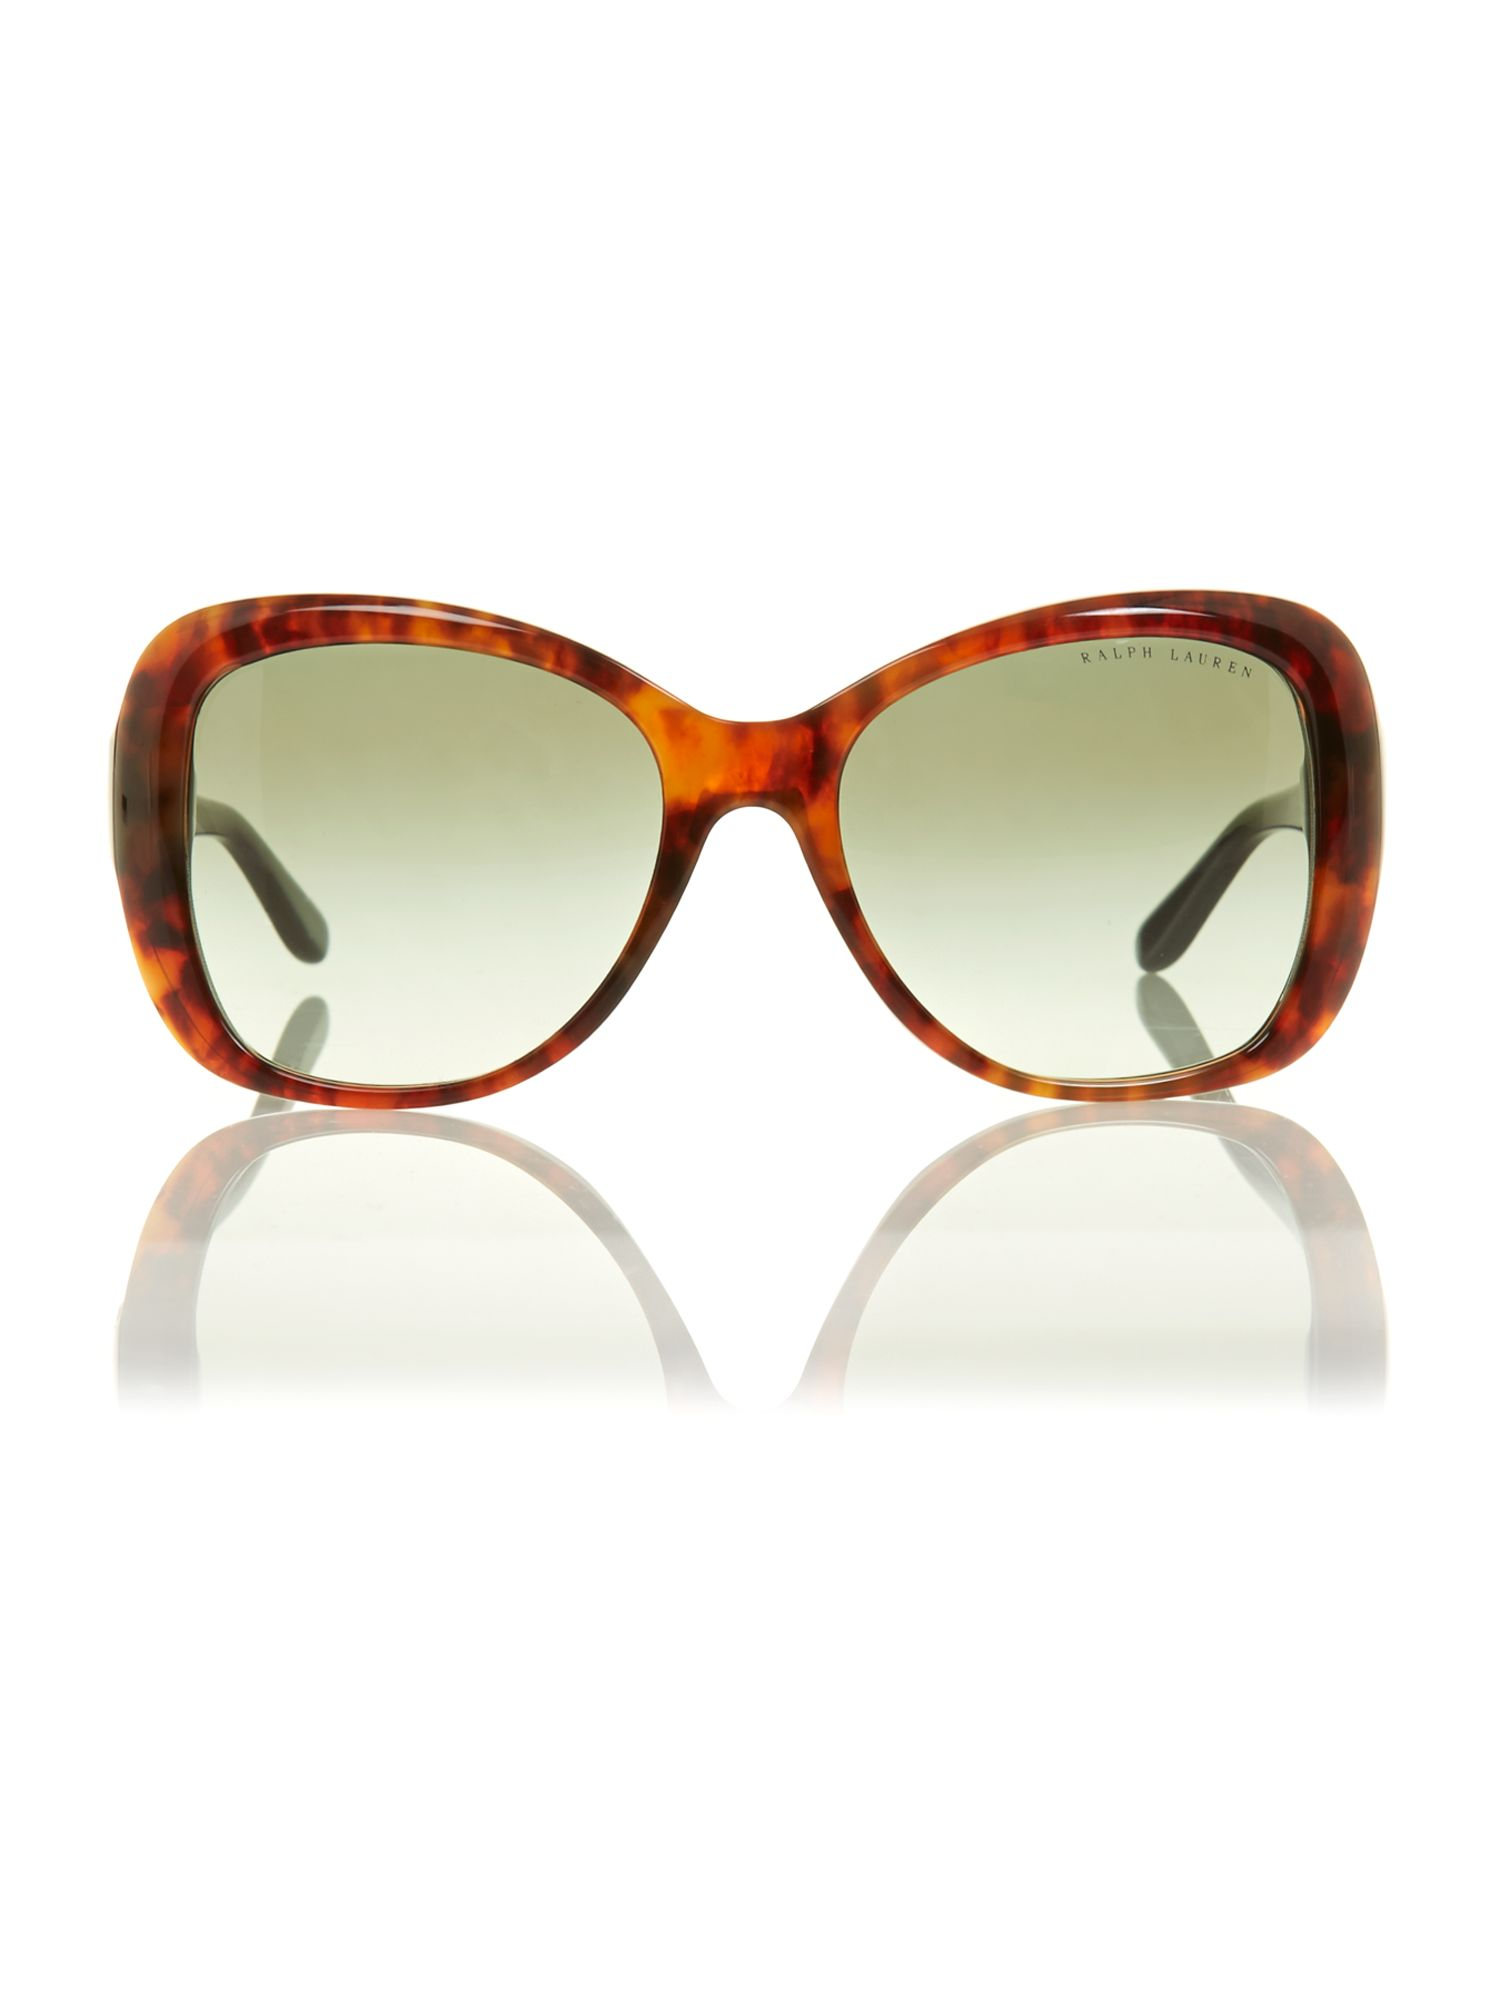 Ladies gold havana sunglasses